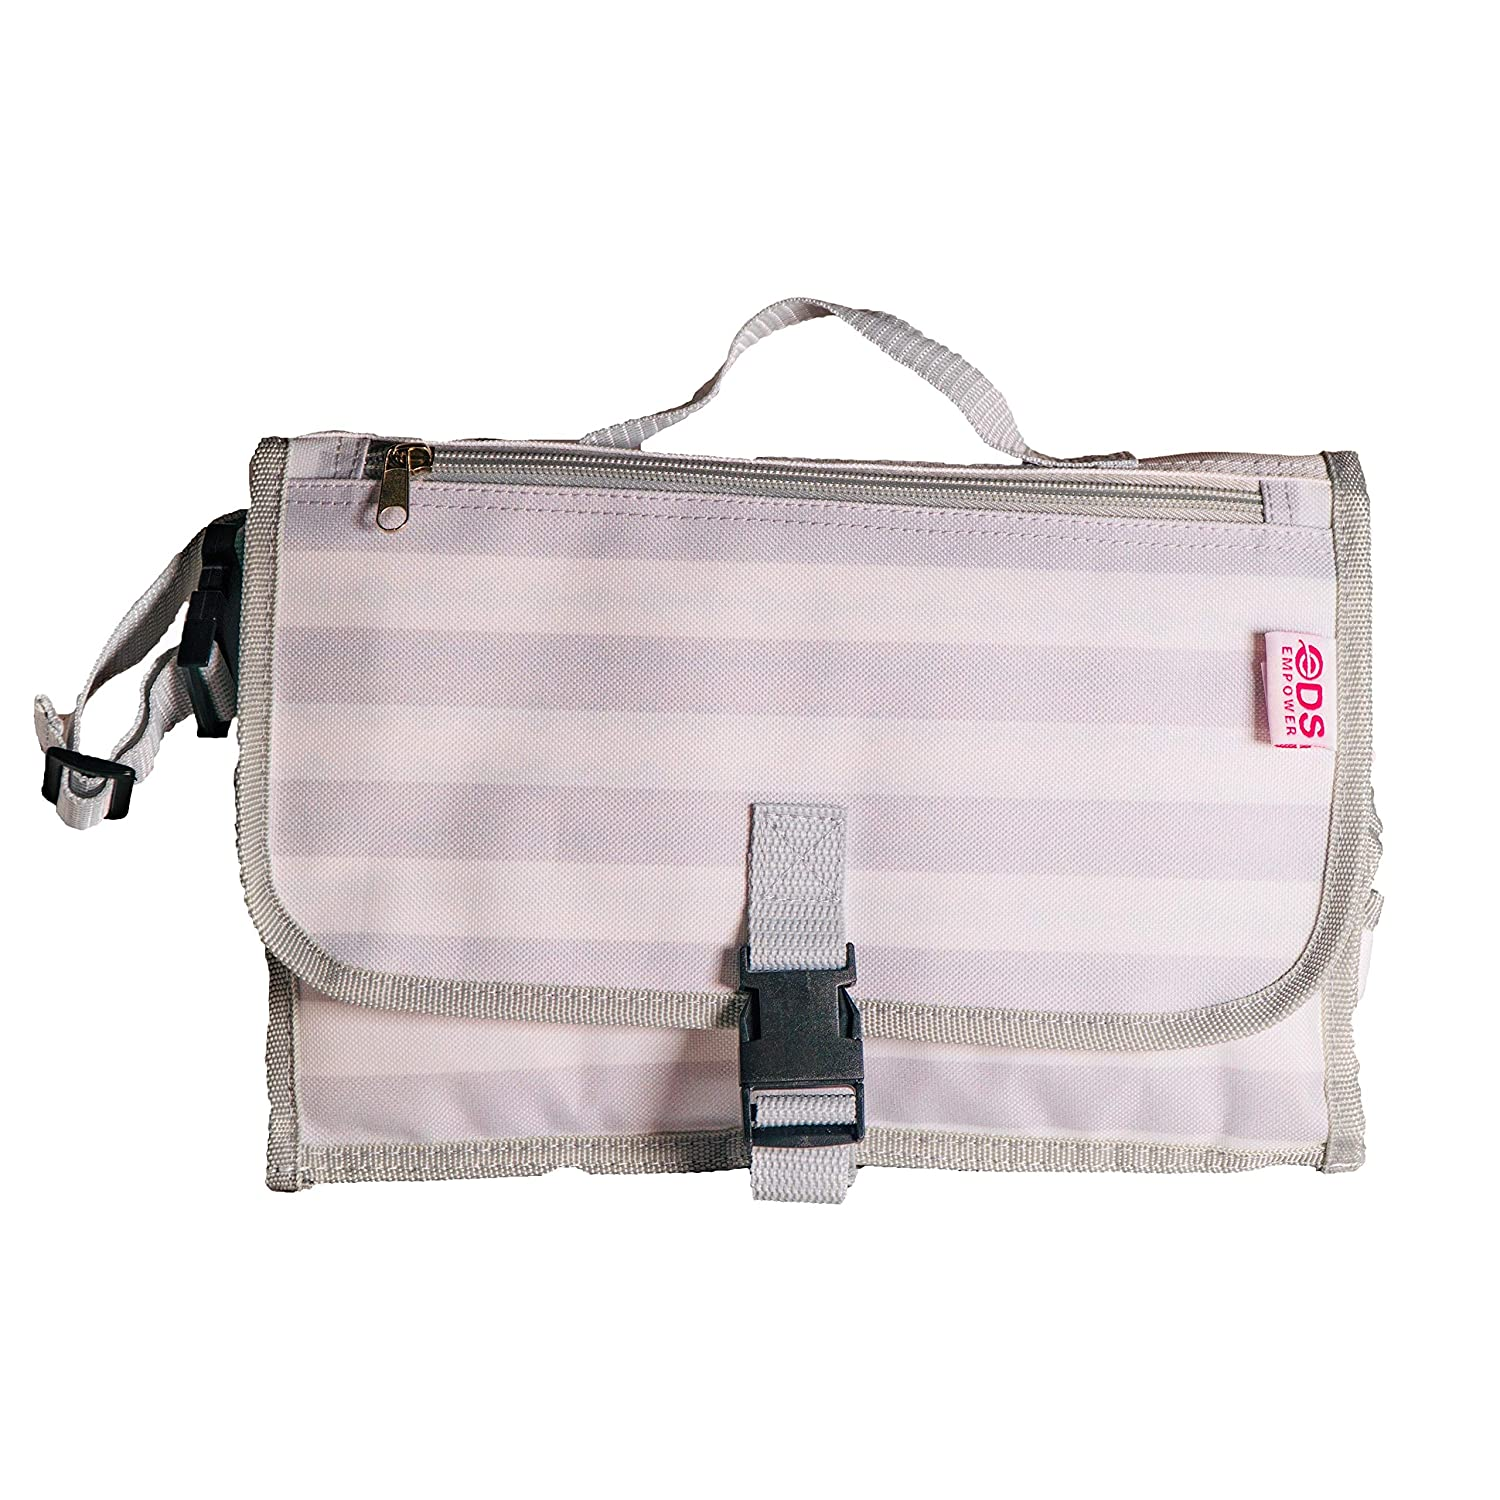 Portable Diaper Changing Pad Outstanding for Baby Waterproof Compact Fol New products, world's highest quality popular!